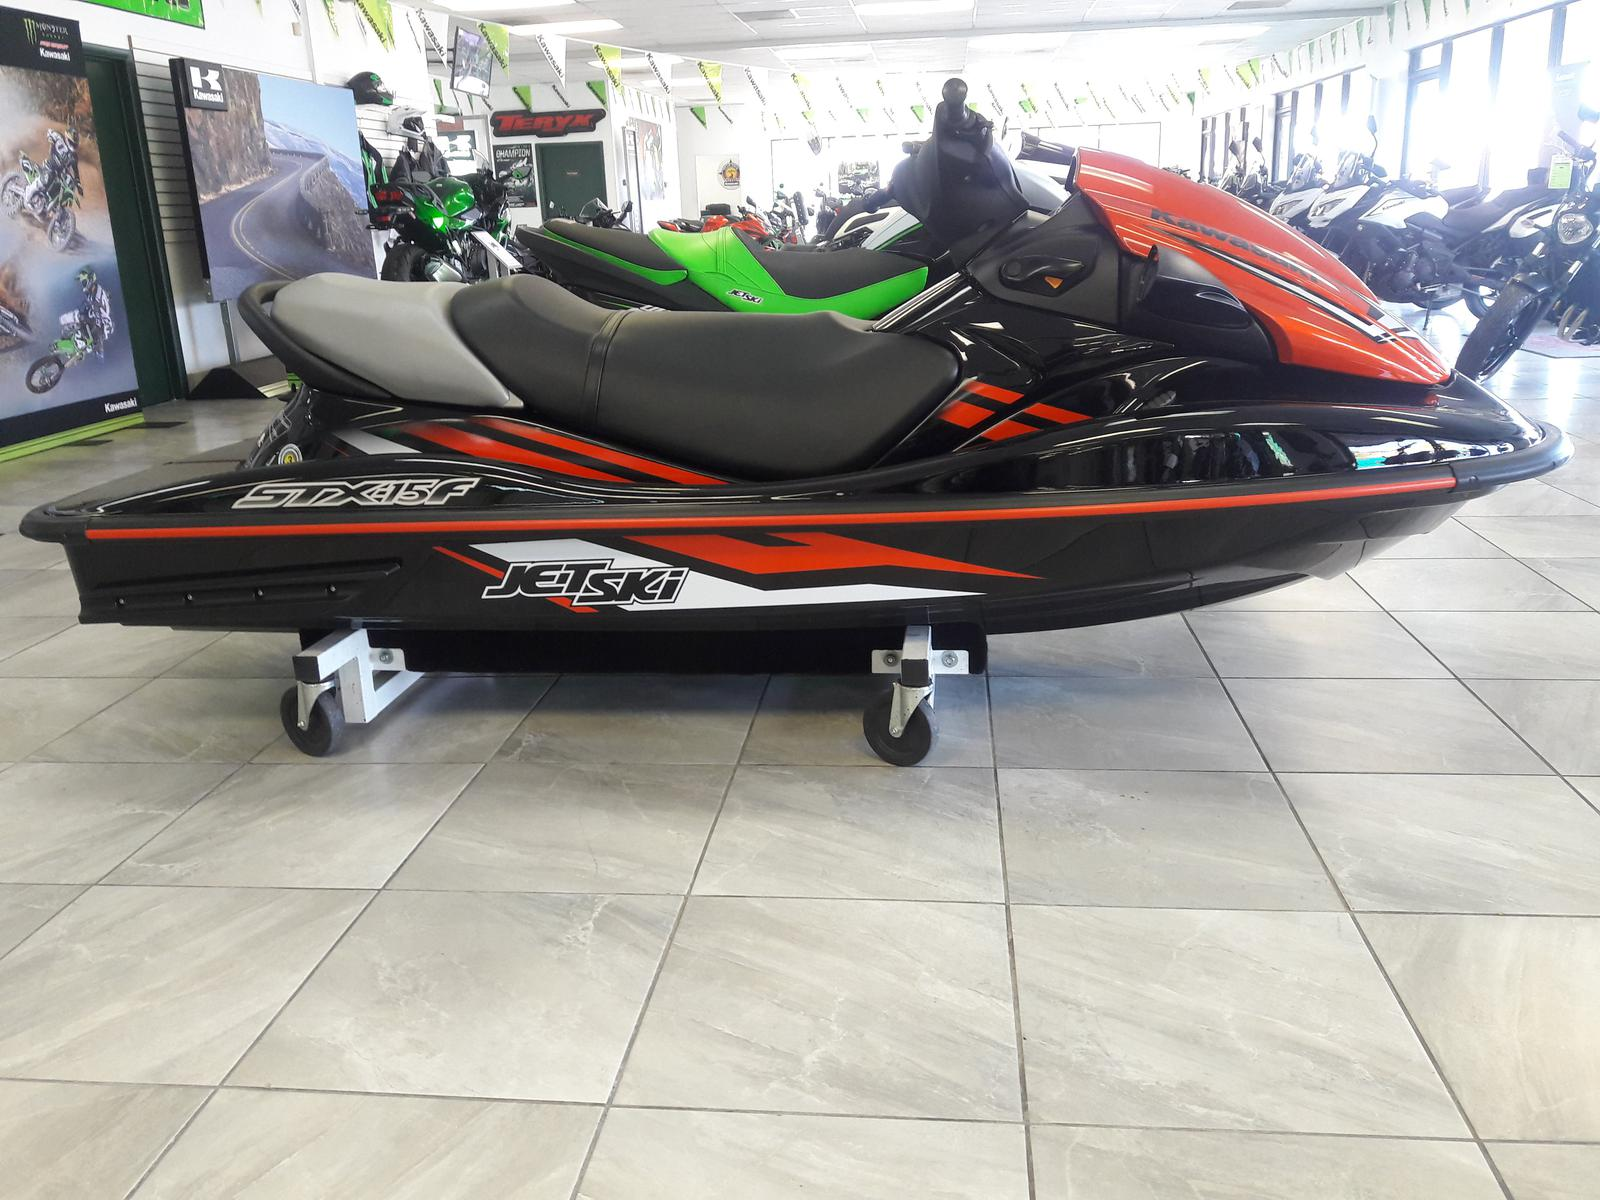 2018 Kawasaki Stx 15f Jet Ski For Sale In Mesa Az Kellys Fuel Filter 20180417 142002